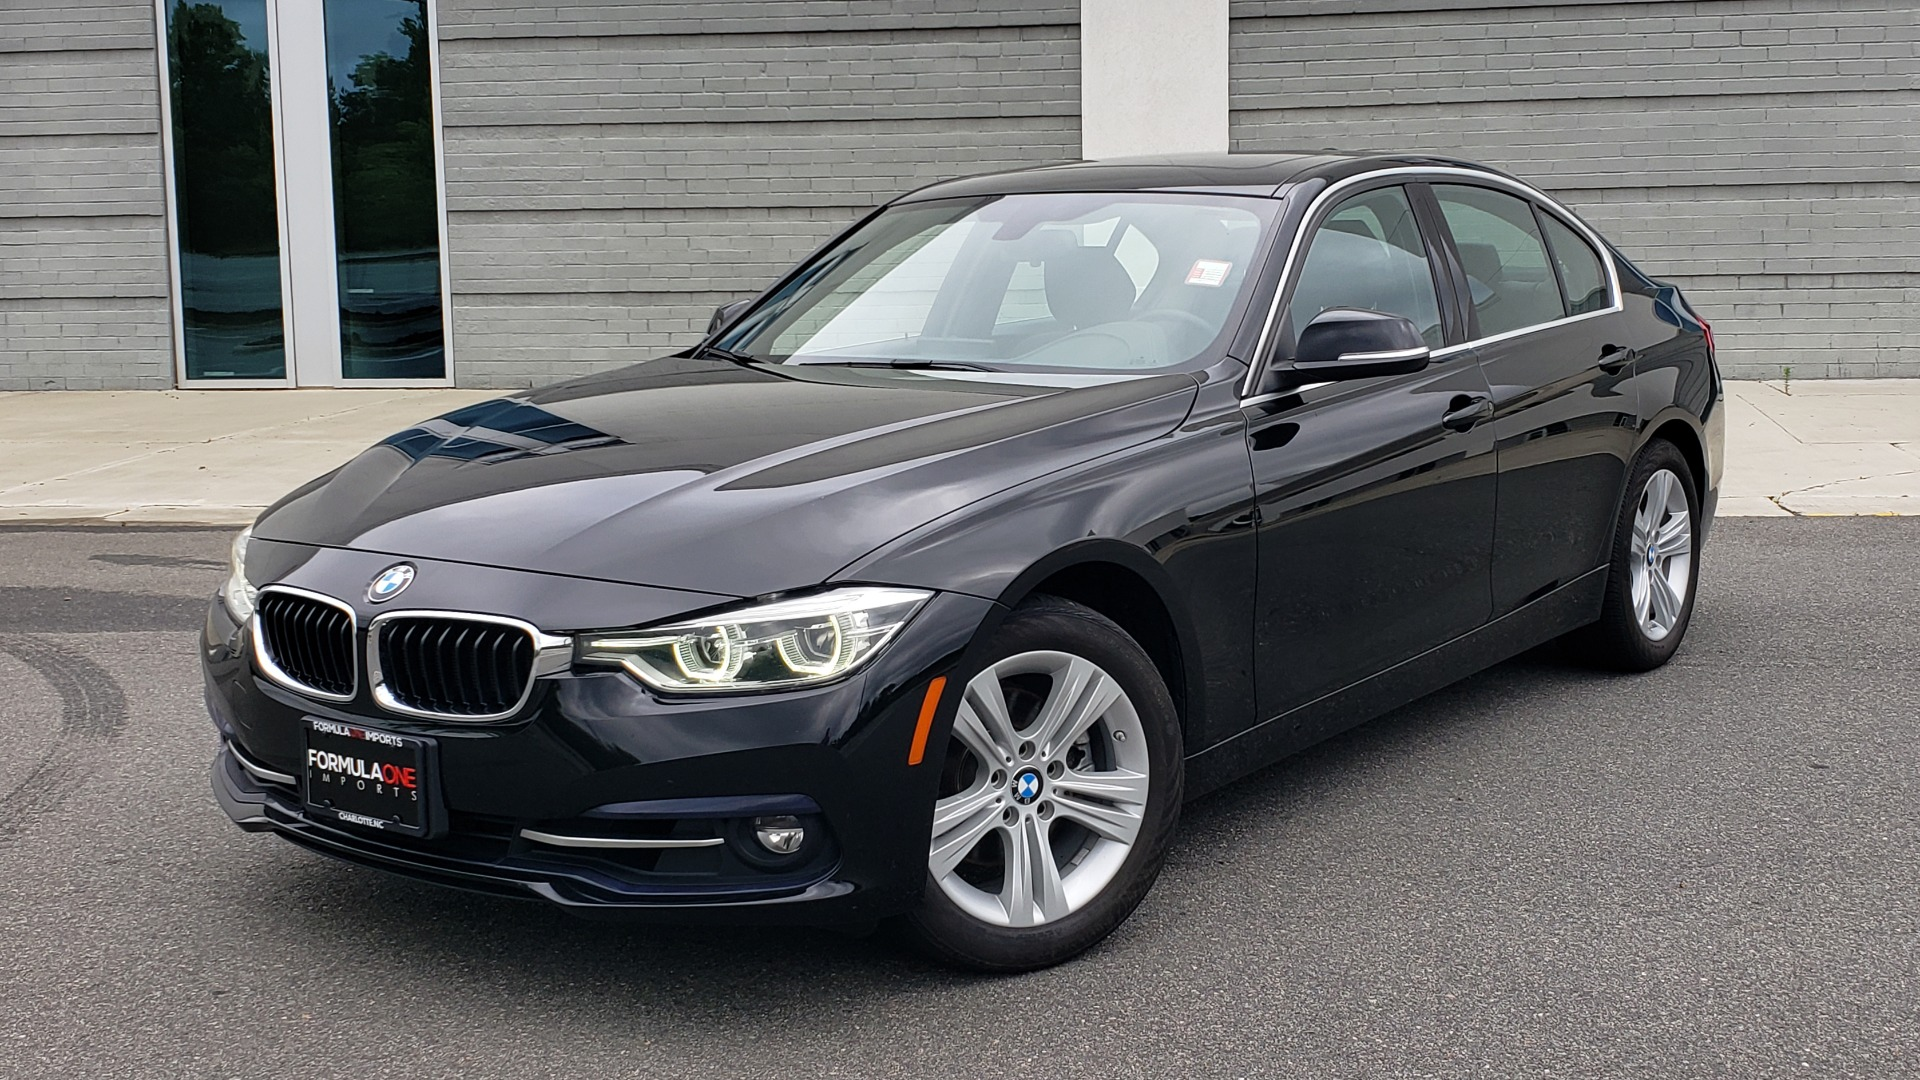 Used 2018 BMW 3 SERIES 330IXDRIVE / CONV PKG / NAV / SUNROOF / HTD STS / REARVIEW for sale $26,552 at Formula Imports in Charlotte NC 28227 1